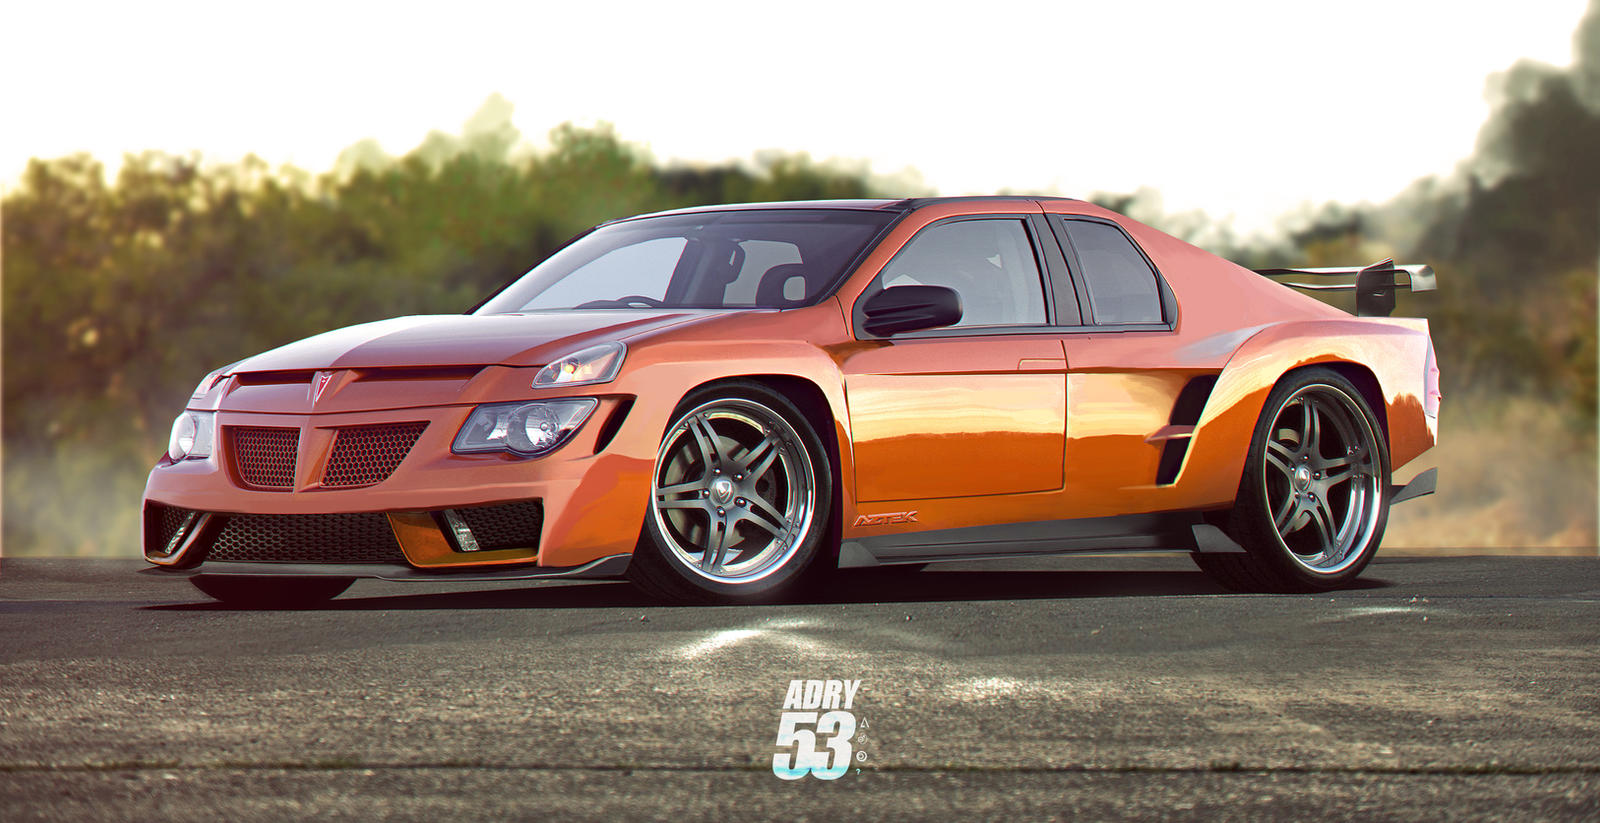 pontiac aztek super sport by adry53 on deviantart. Black Bedroom Furniture Sets. Home Design Ideas